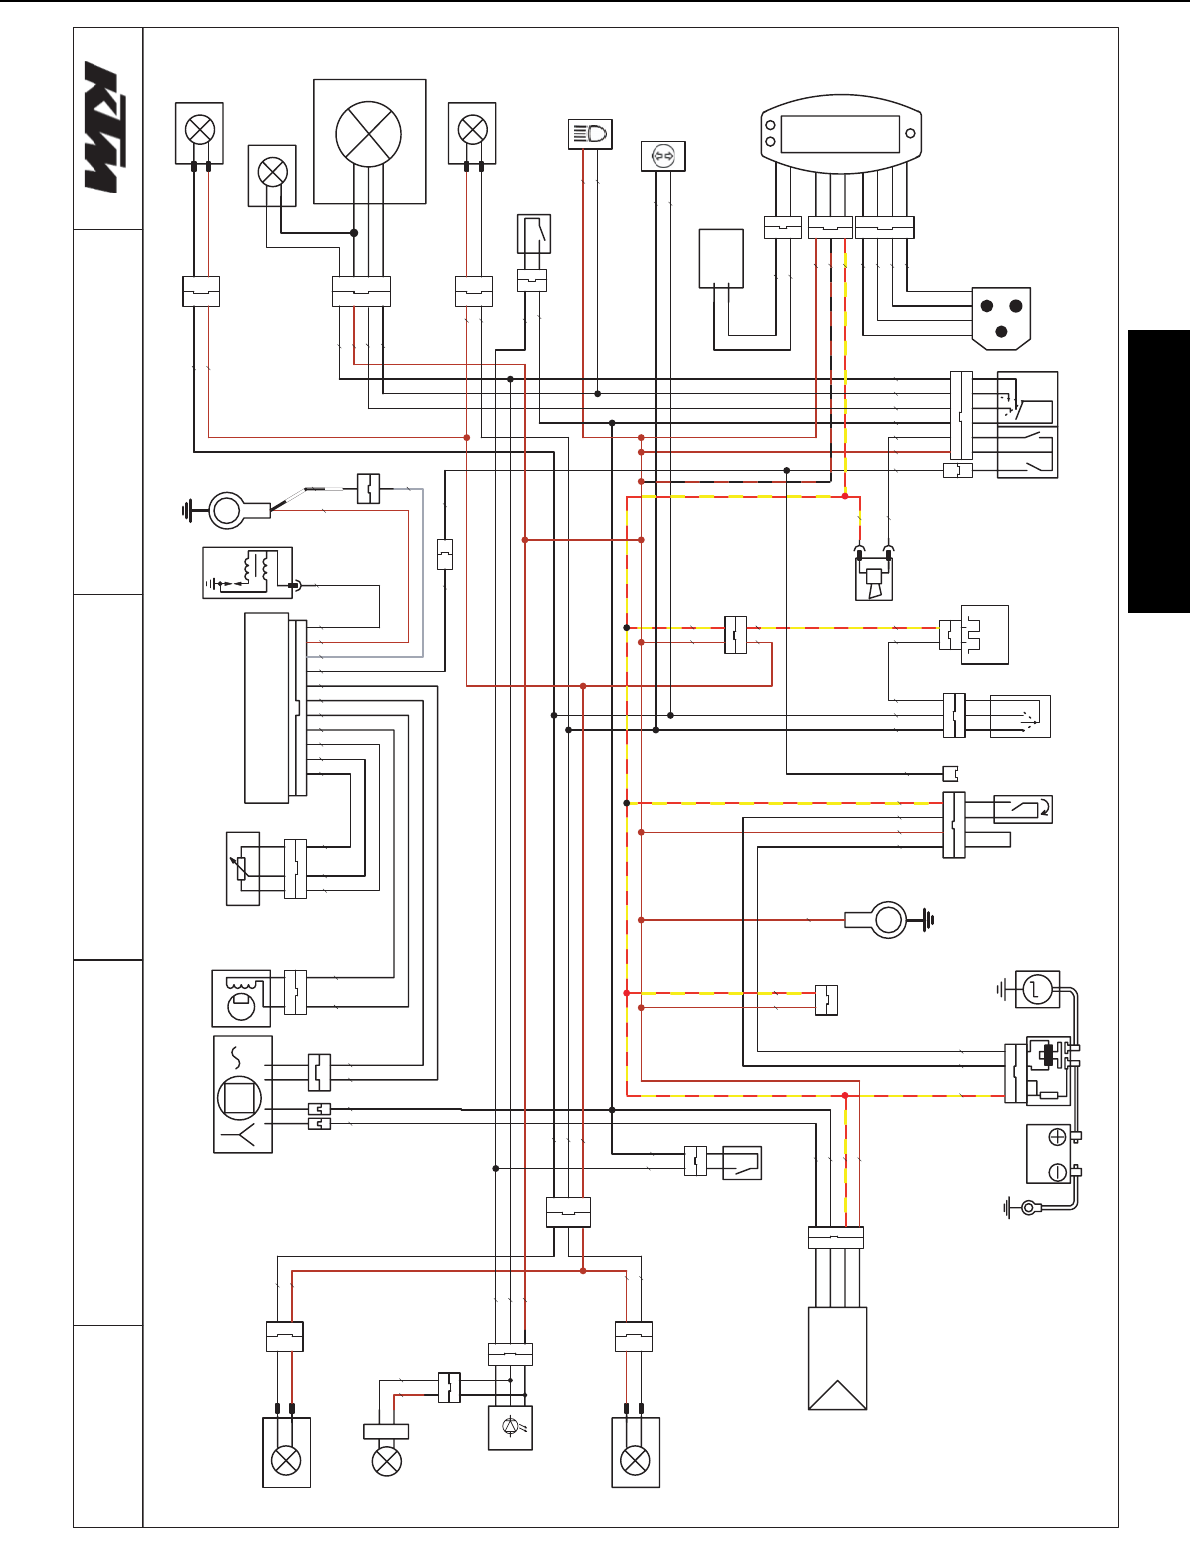 ktm freeride 250 wiring diagram wiring diagrams ktm freeride 250r wiring diagram ktm freeride 250 wiring diagram #1